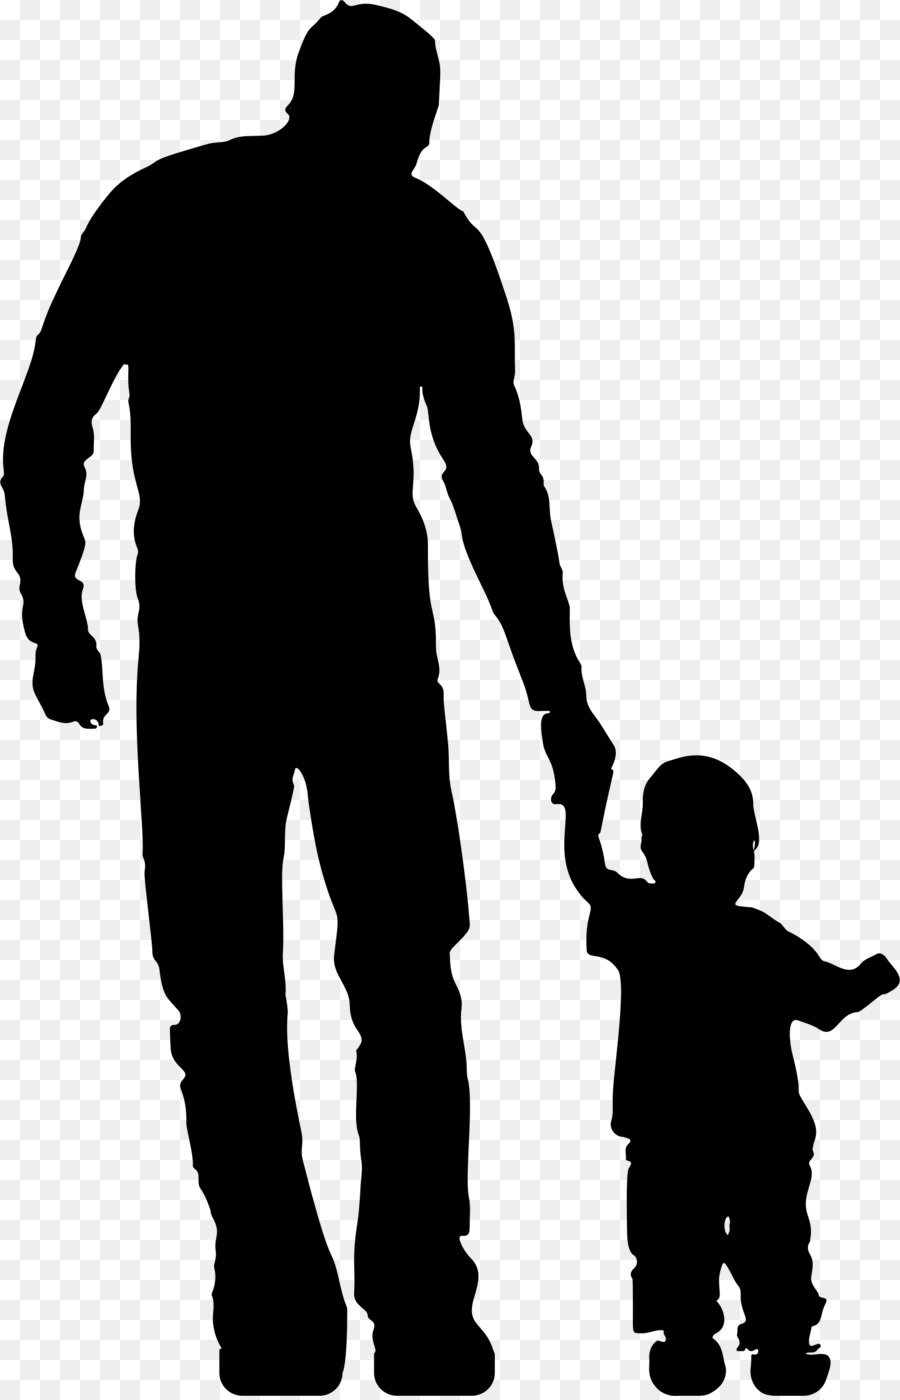 Dad and son clipart clip art free stock Child Cartoon png download - 1466*2274 - Free Transparent Father png ... clip art free stock